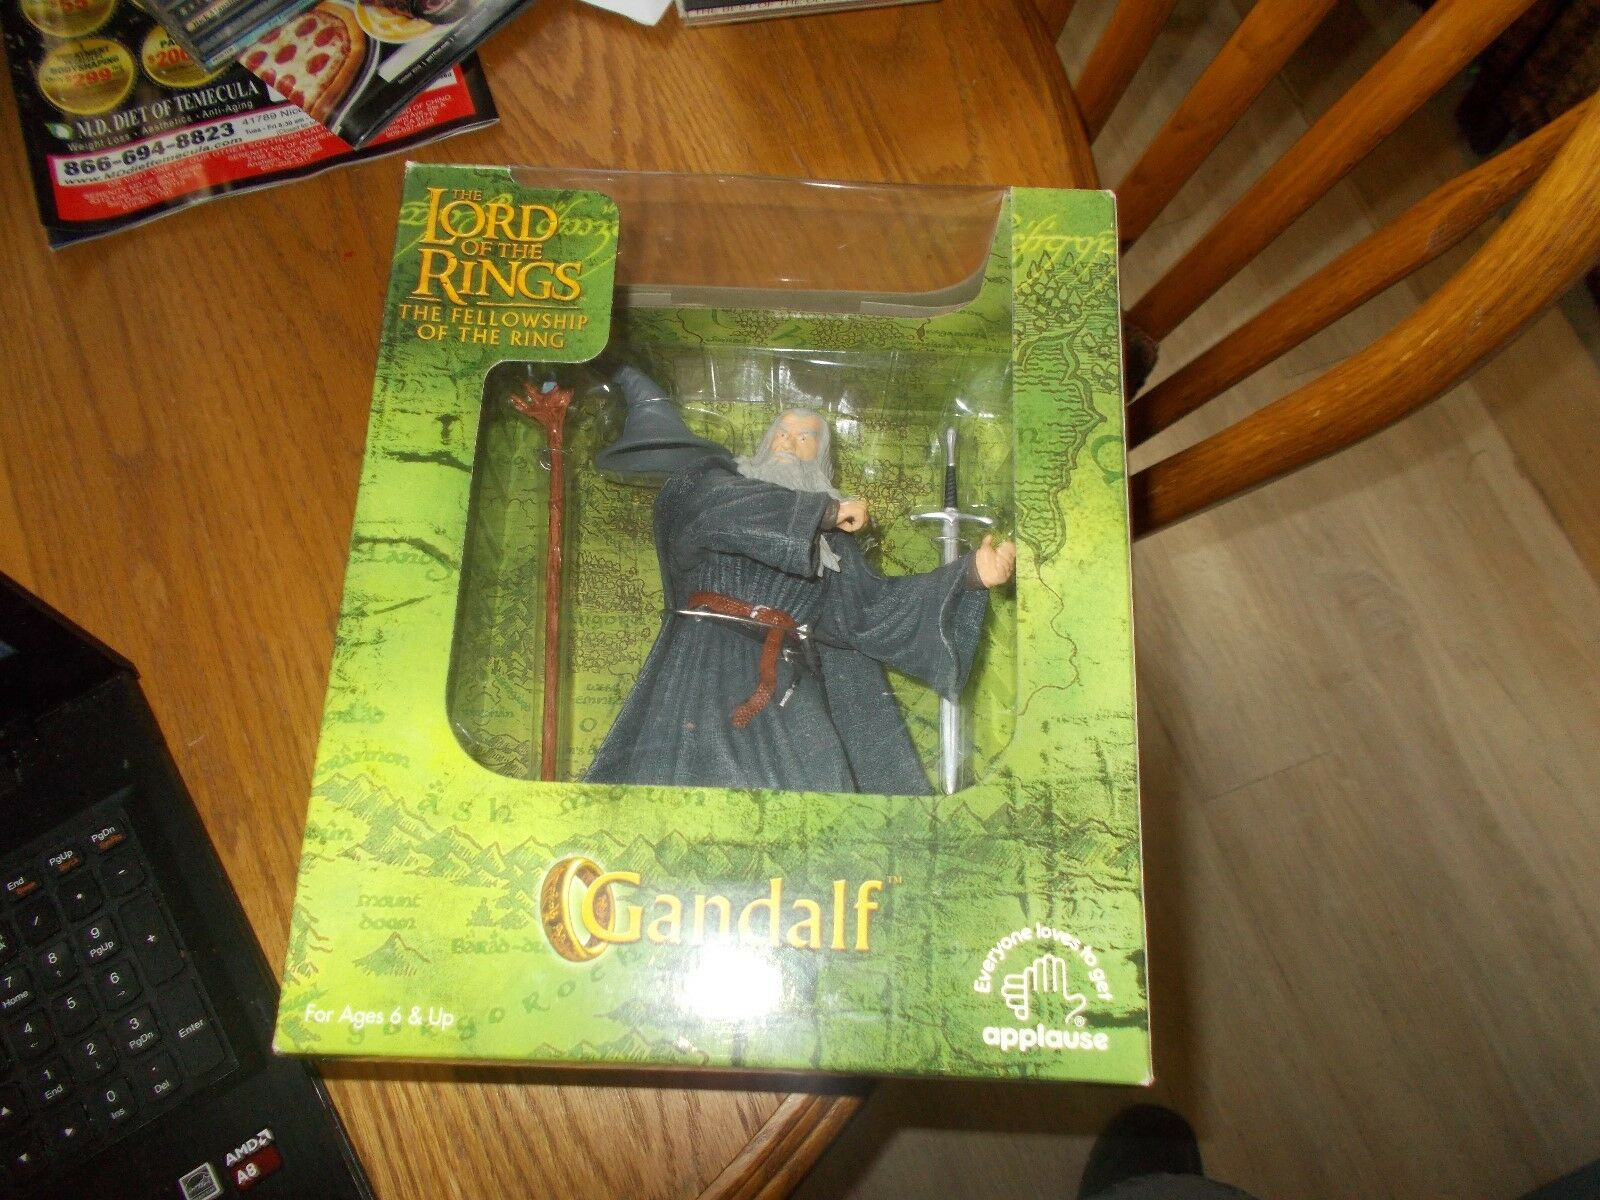 GANDALF-LORD OF THE RINGS THE FELLOWSHIP OF THE RING BRAND NEW SEALED